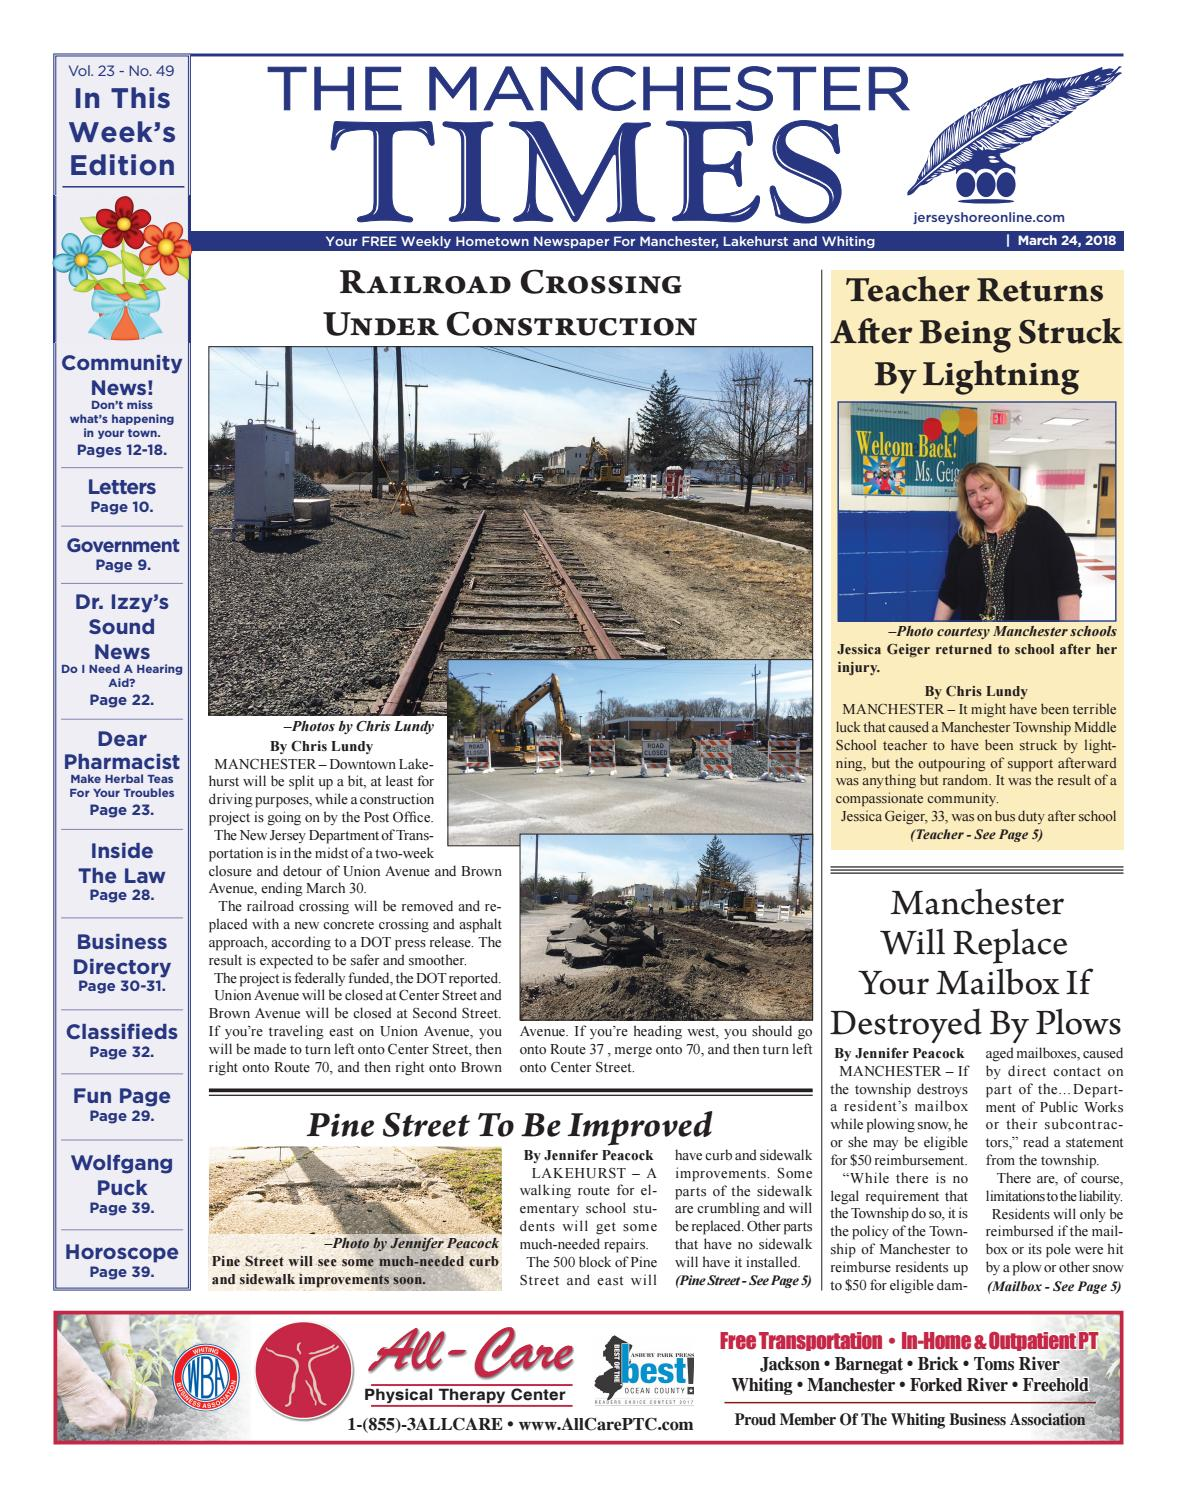 2018-03-24 - The Manchester Times by Micromedia Publications